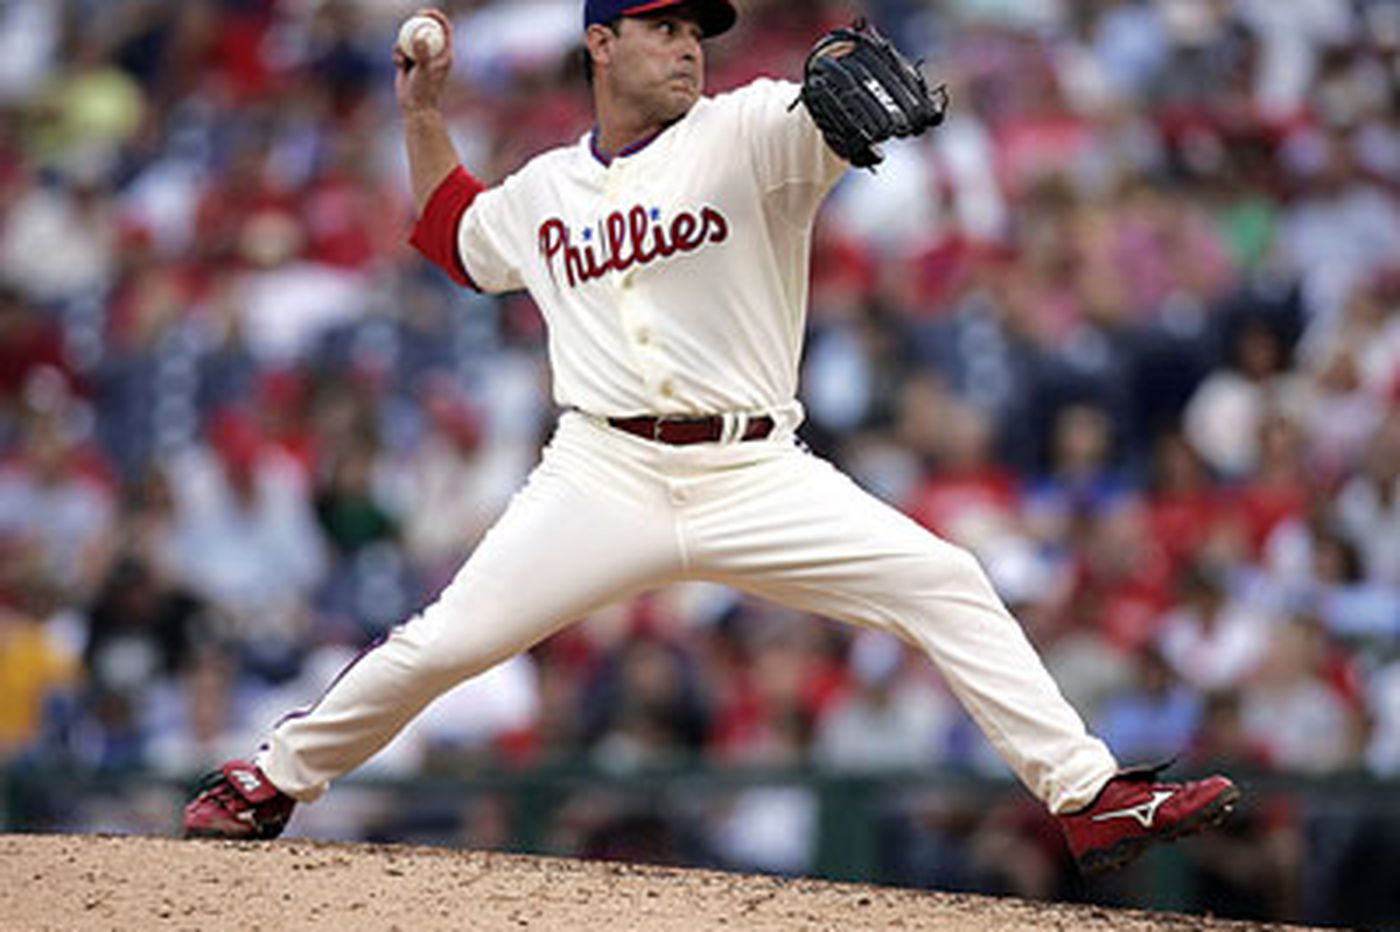 Phillies Notebook: Seanez could take Happ's place on Phillies' NLCS roster